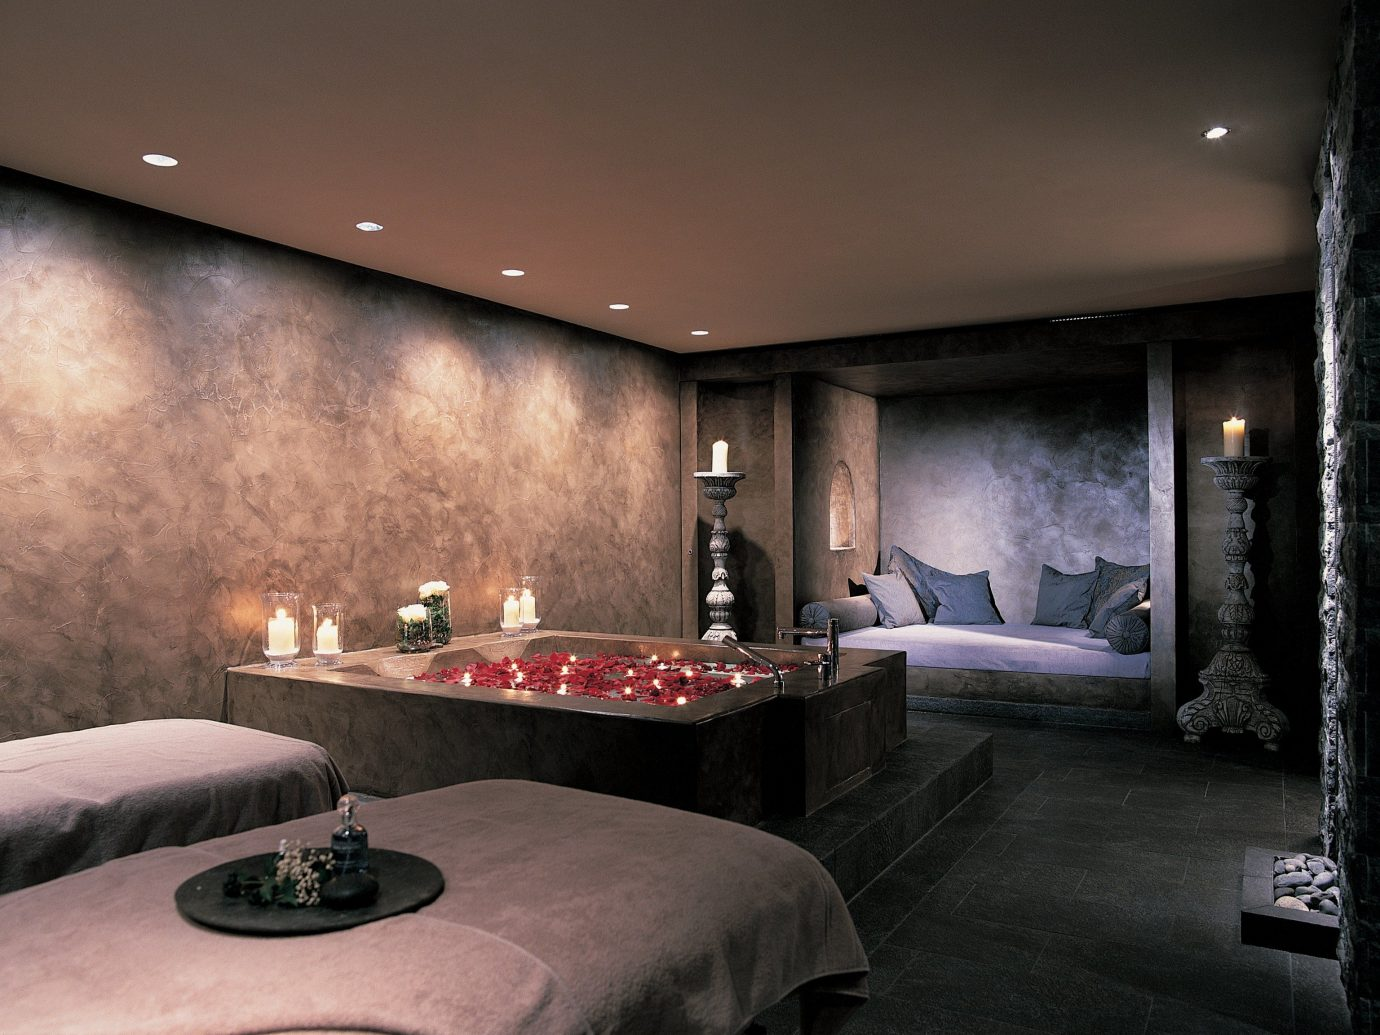 Health + Wellness Spa Retreats Trip Ideas Winter indoor ceiling bed room property living room interior design estate lighting Lobby home Design Suite Bedroom hotel